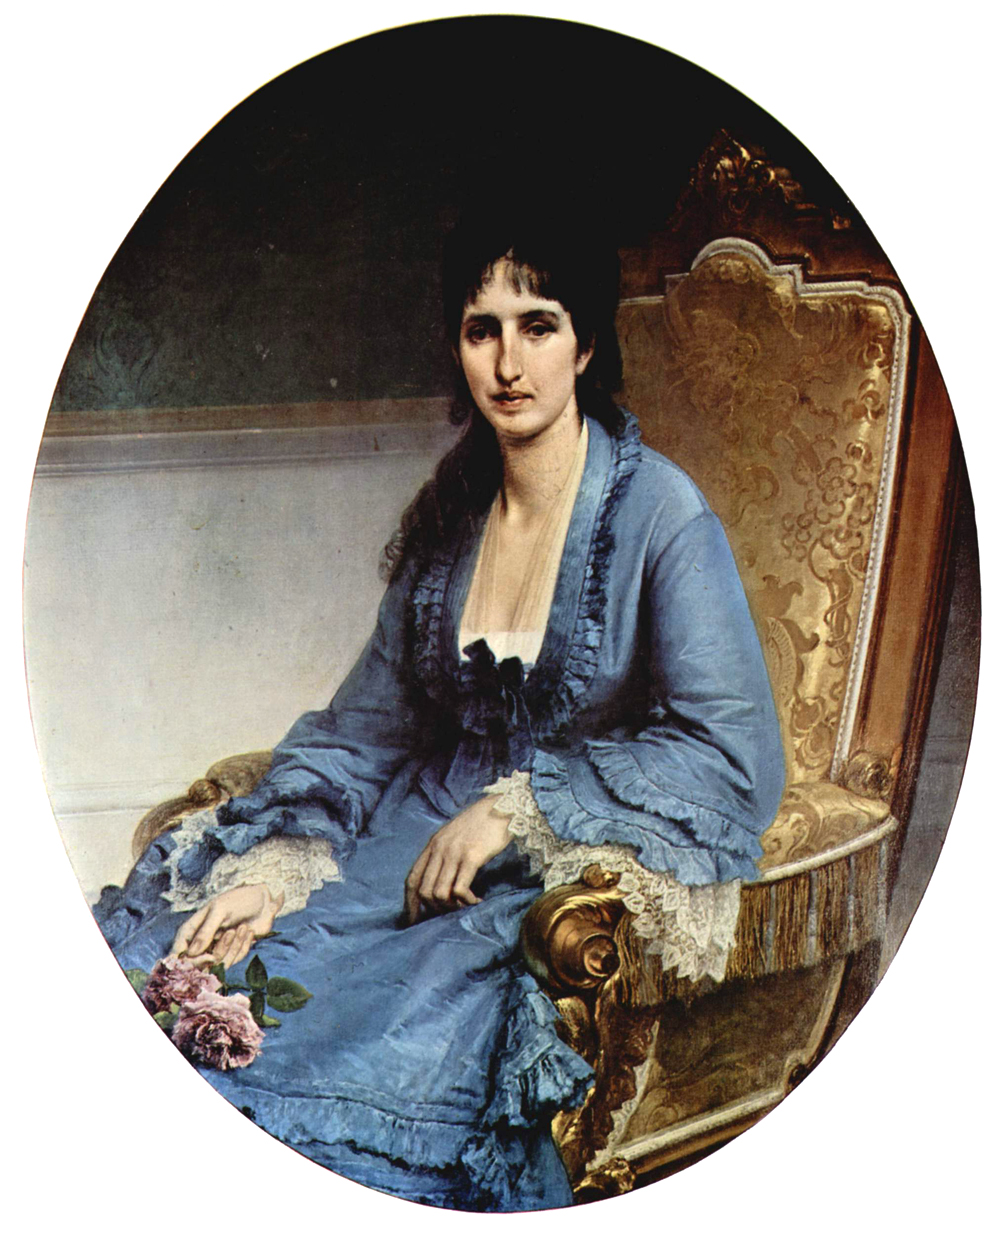 Francesco Hayez (1791-1882)    Portrait of Antonietta Negroni Prati Morosini, Oval   Oil on canvas, 	1872   115 × 93,5 cm   Civica Galleria d'Arte Moderna, Milan, Italy